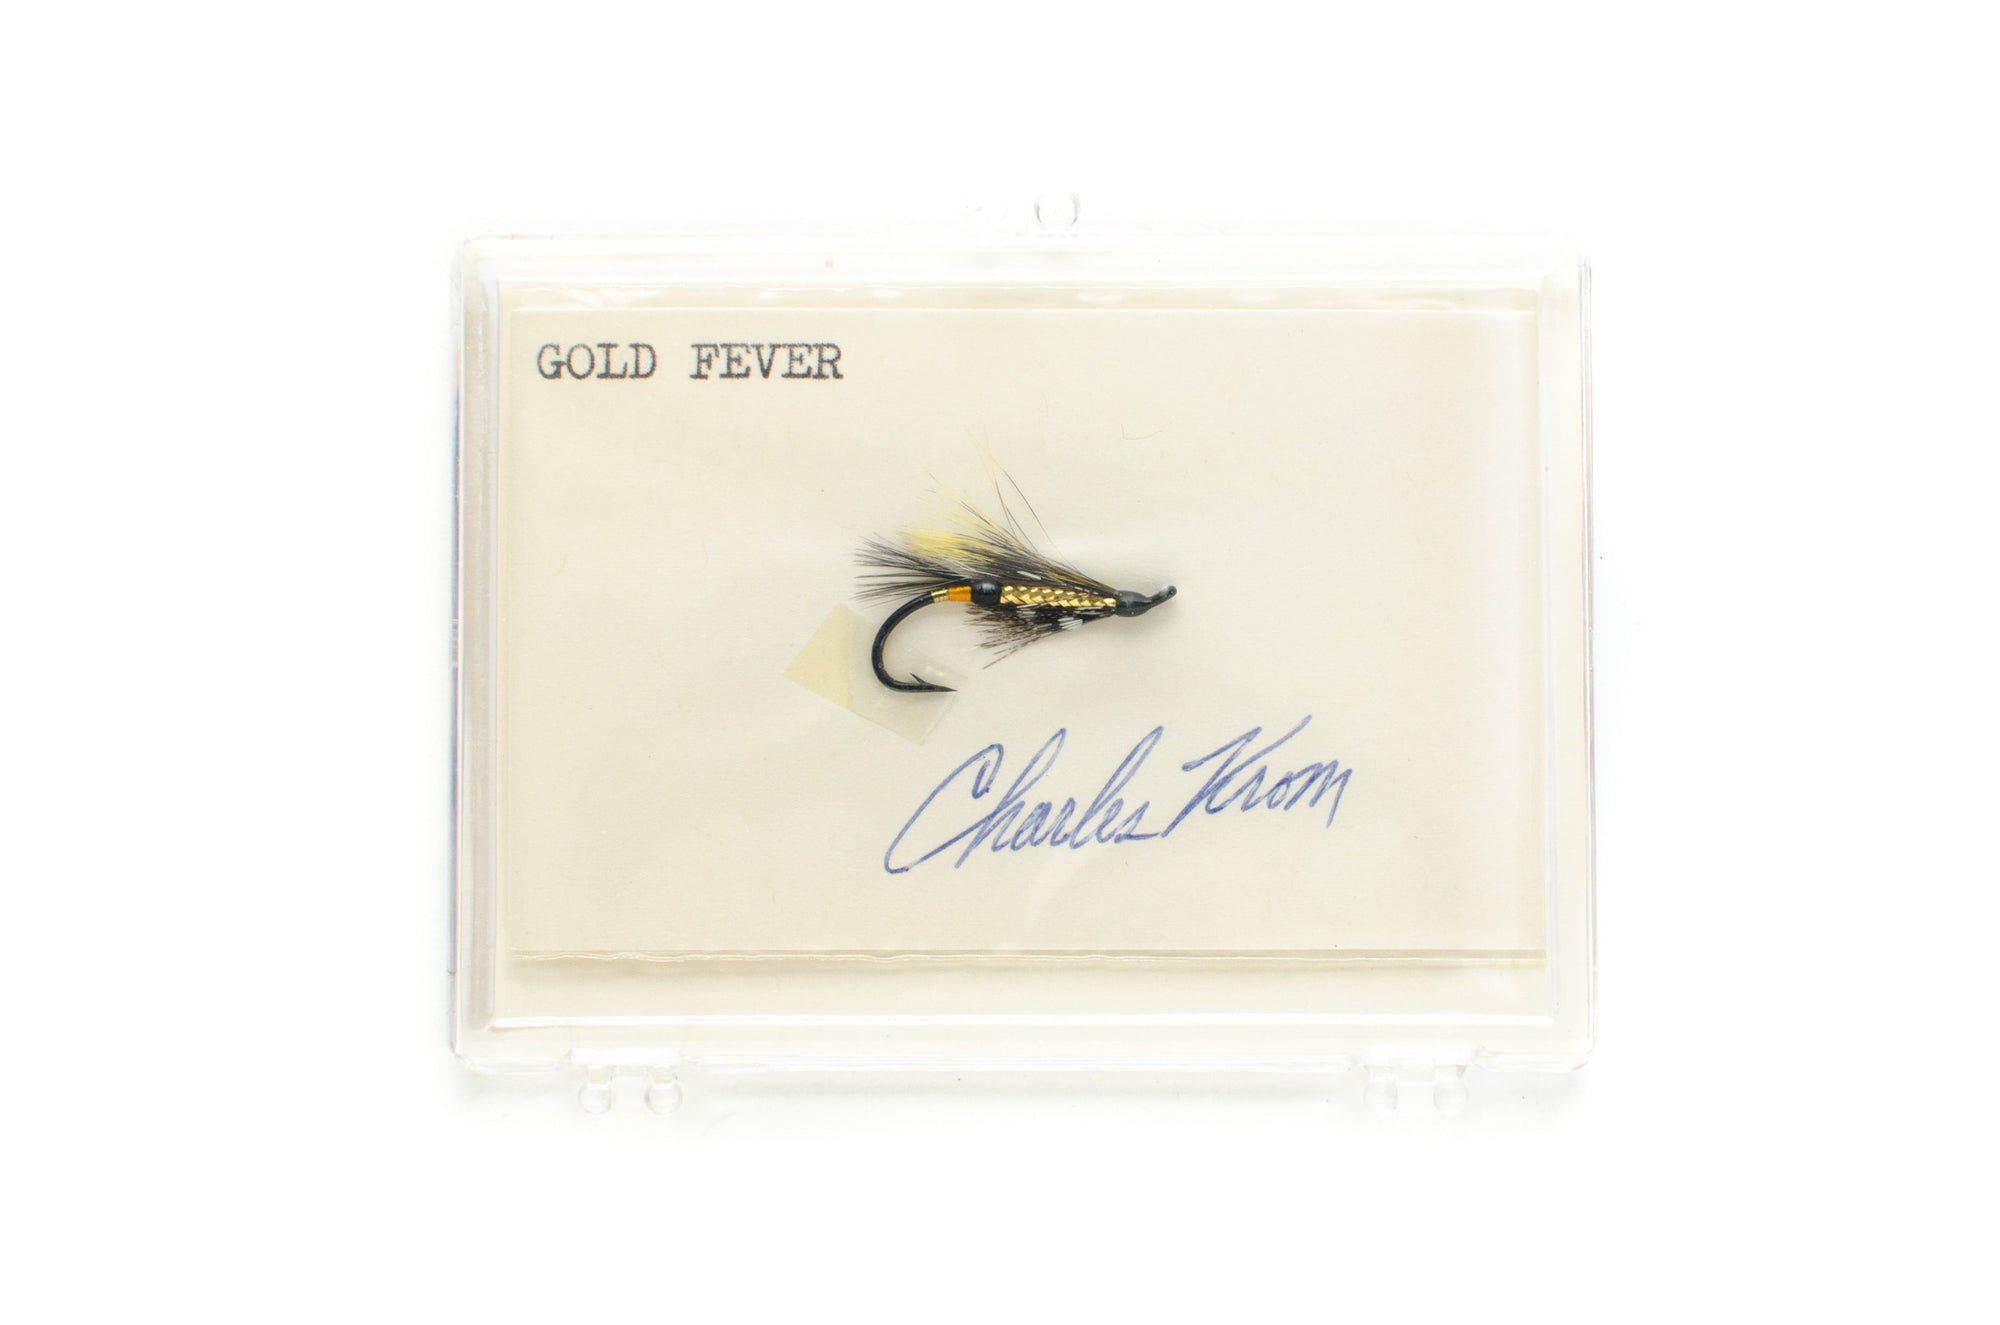 Gold Fever Salmon Fly by Charles Krom